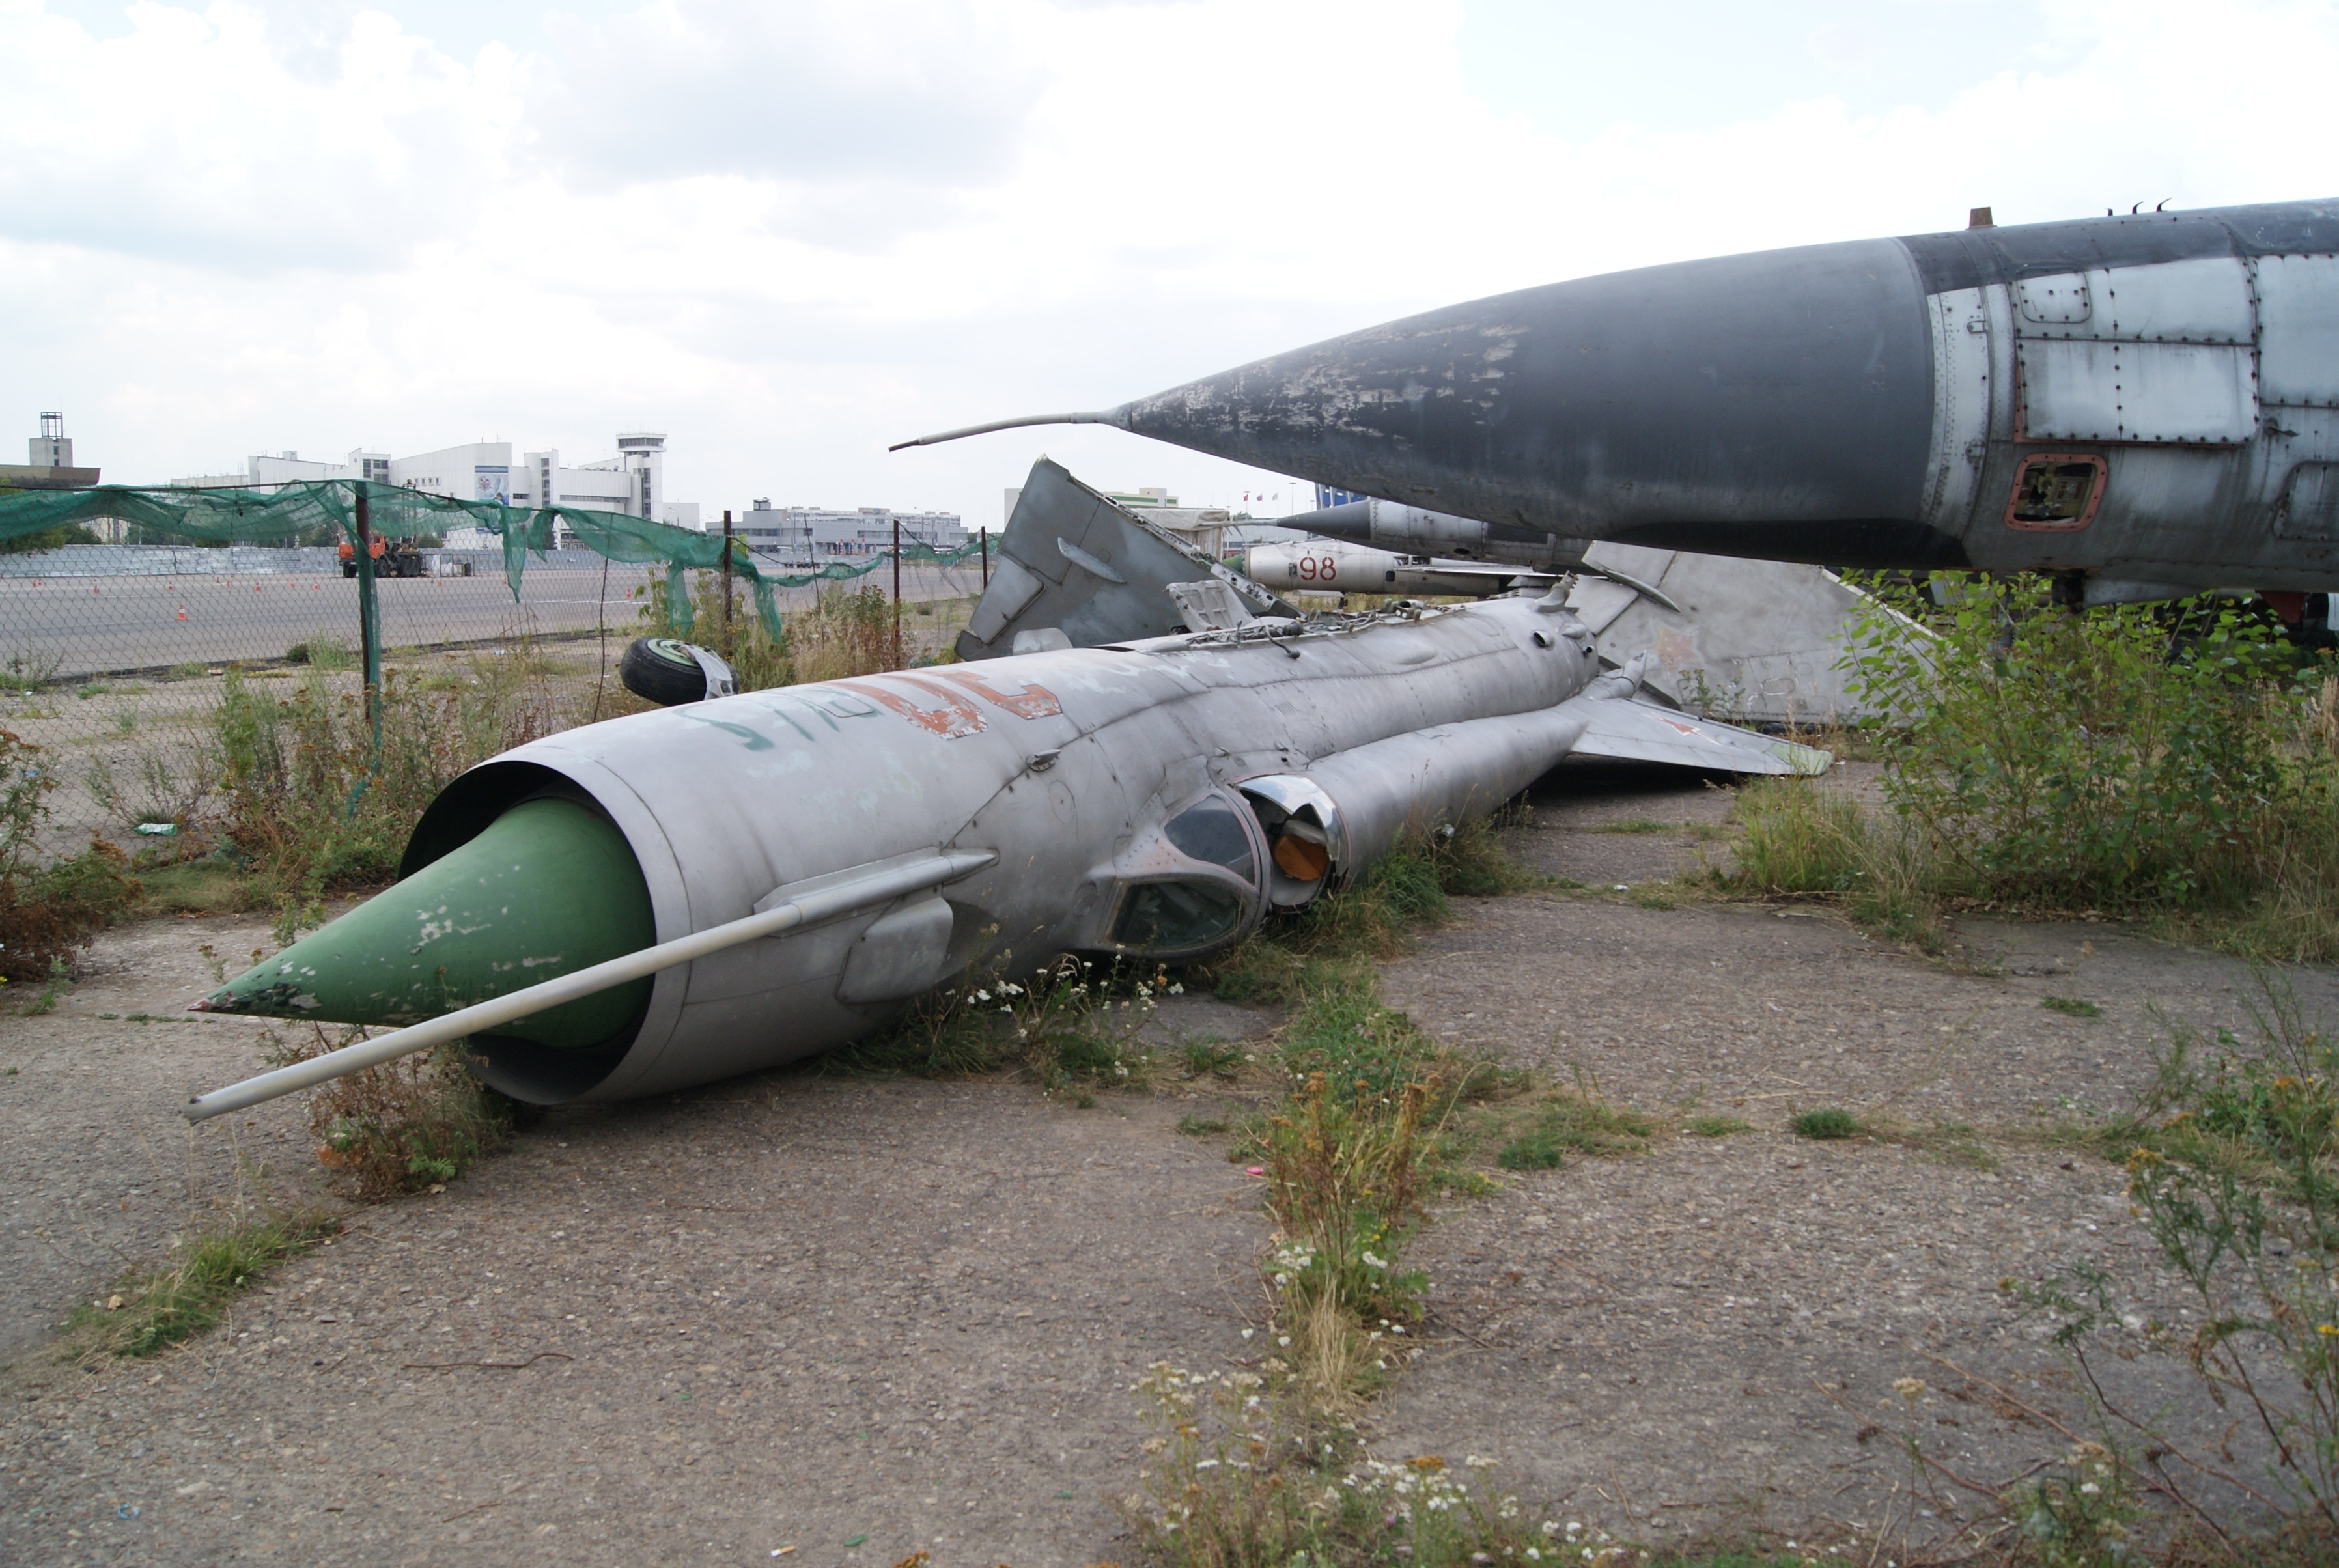 chernobyl helicopter graveyard with File Mig 21 Fishbed  Abandoned Aircraft Museum At Khodynka Airdrome  7721153362 on Nuclear Meltdown3 furthermore Watch likewise 165731 also Aircraft Graveyard moreover Puget Sound Lawmaker Pitches New Bridge Built Old Aircraft Carriers.